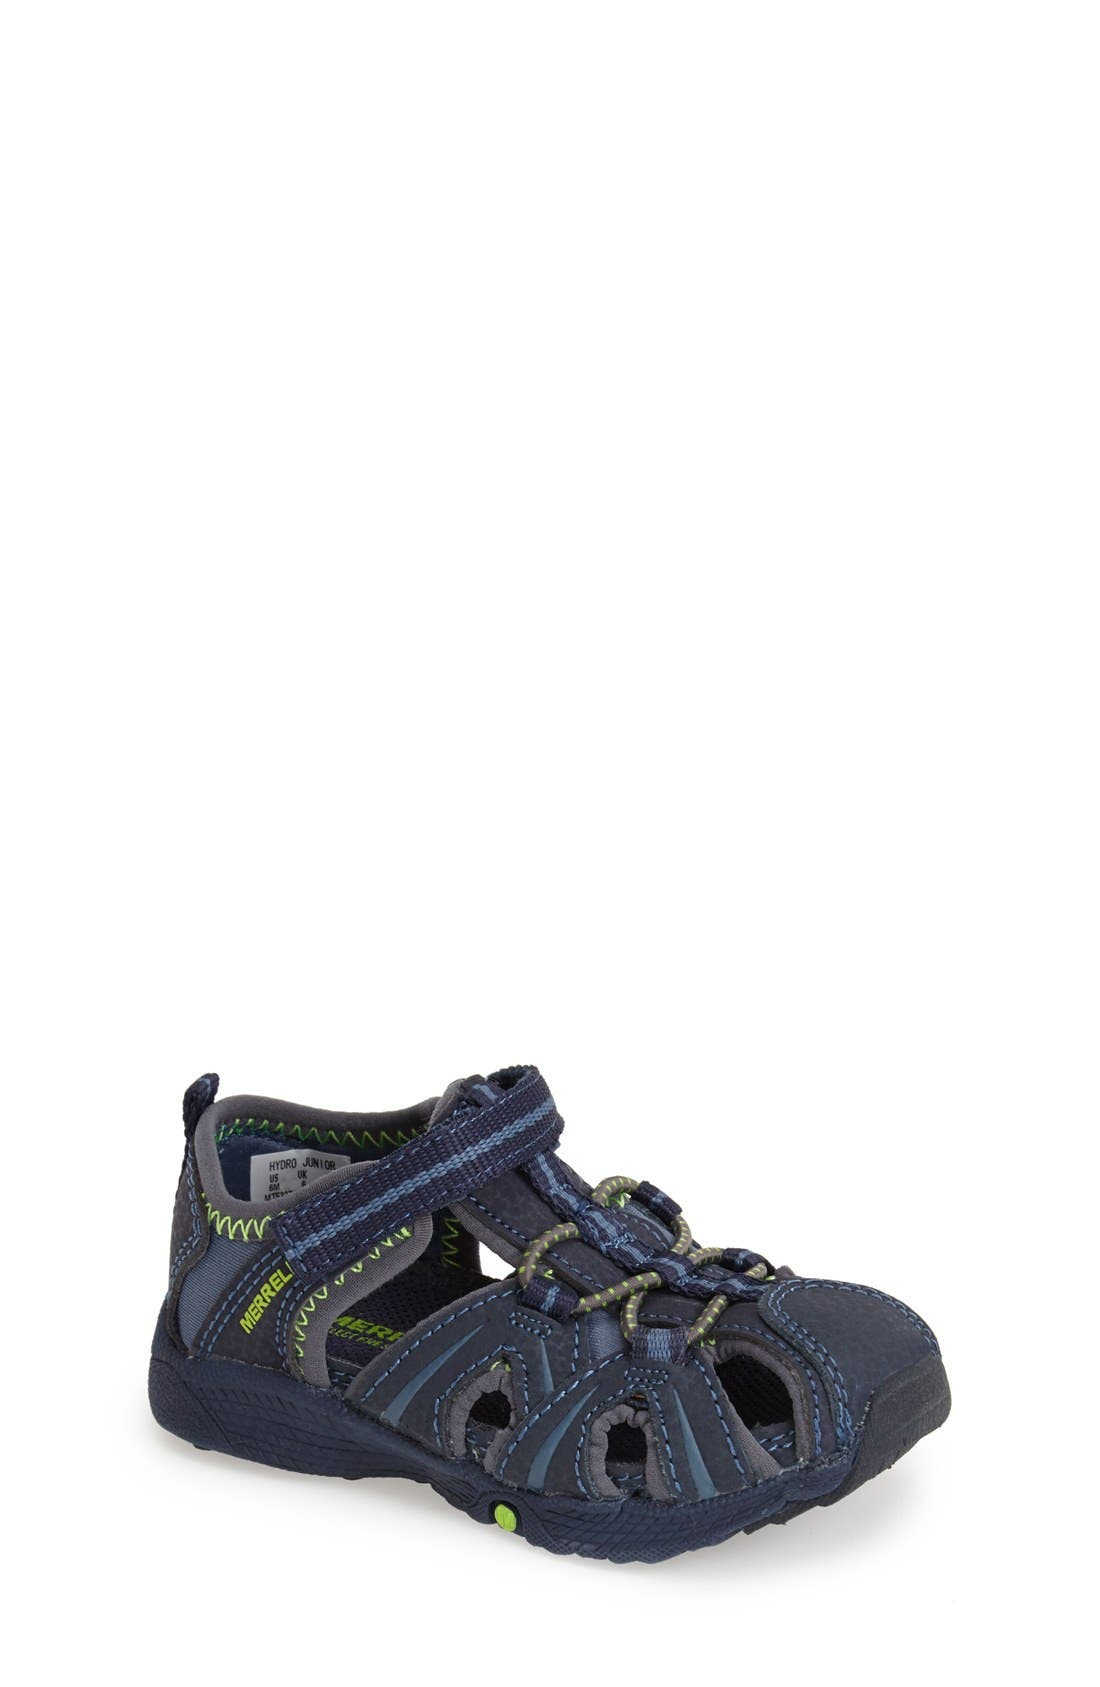 Toddler Merrell Hydro Junior MSelect Water Sandal Size 8 W  Blue